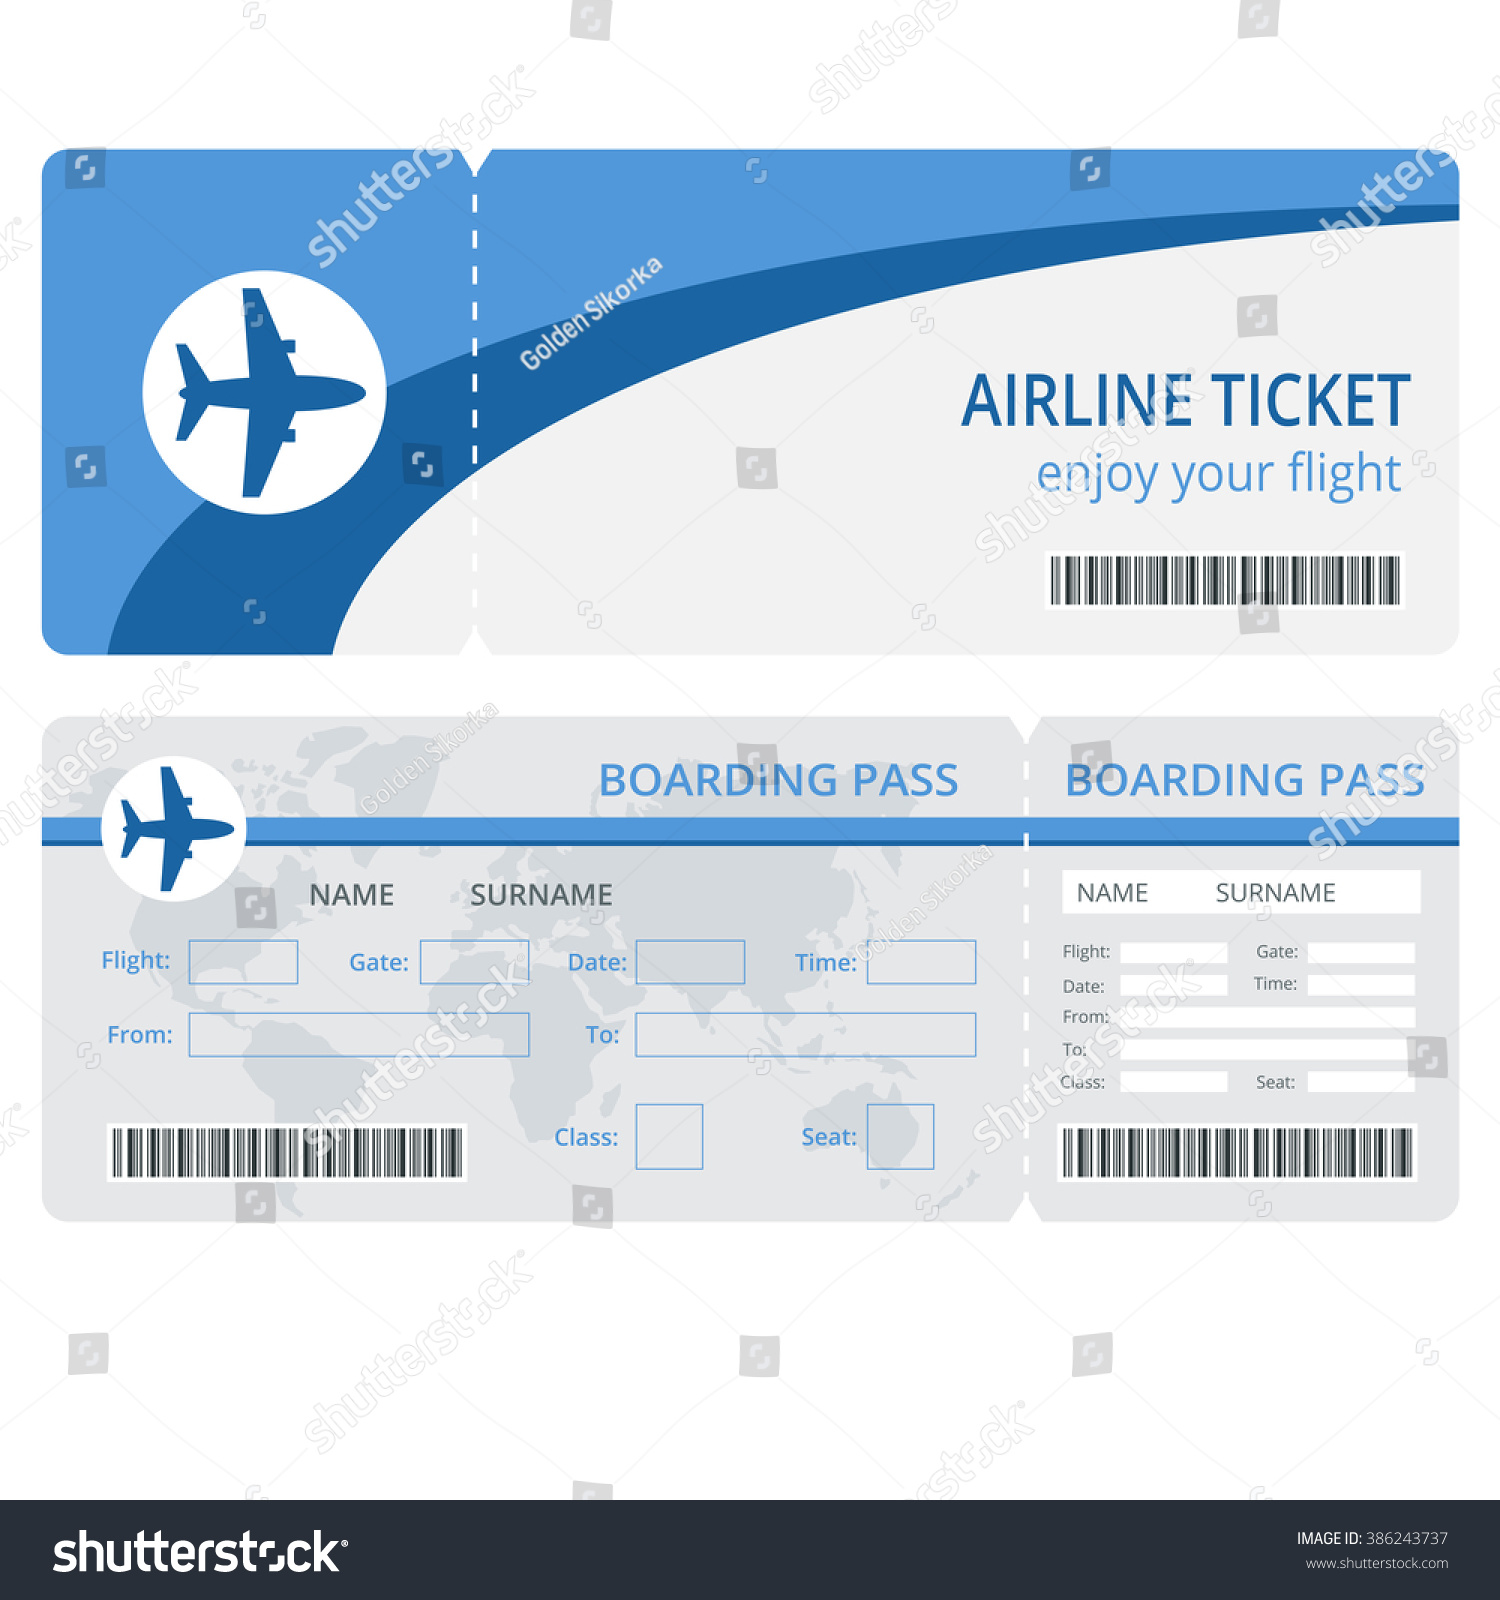 blank airline ticket essay